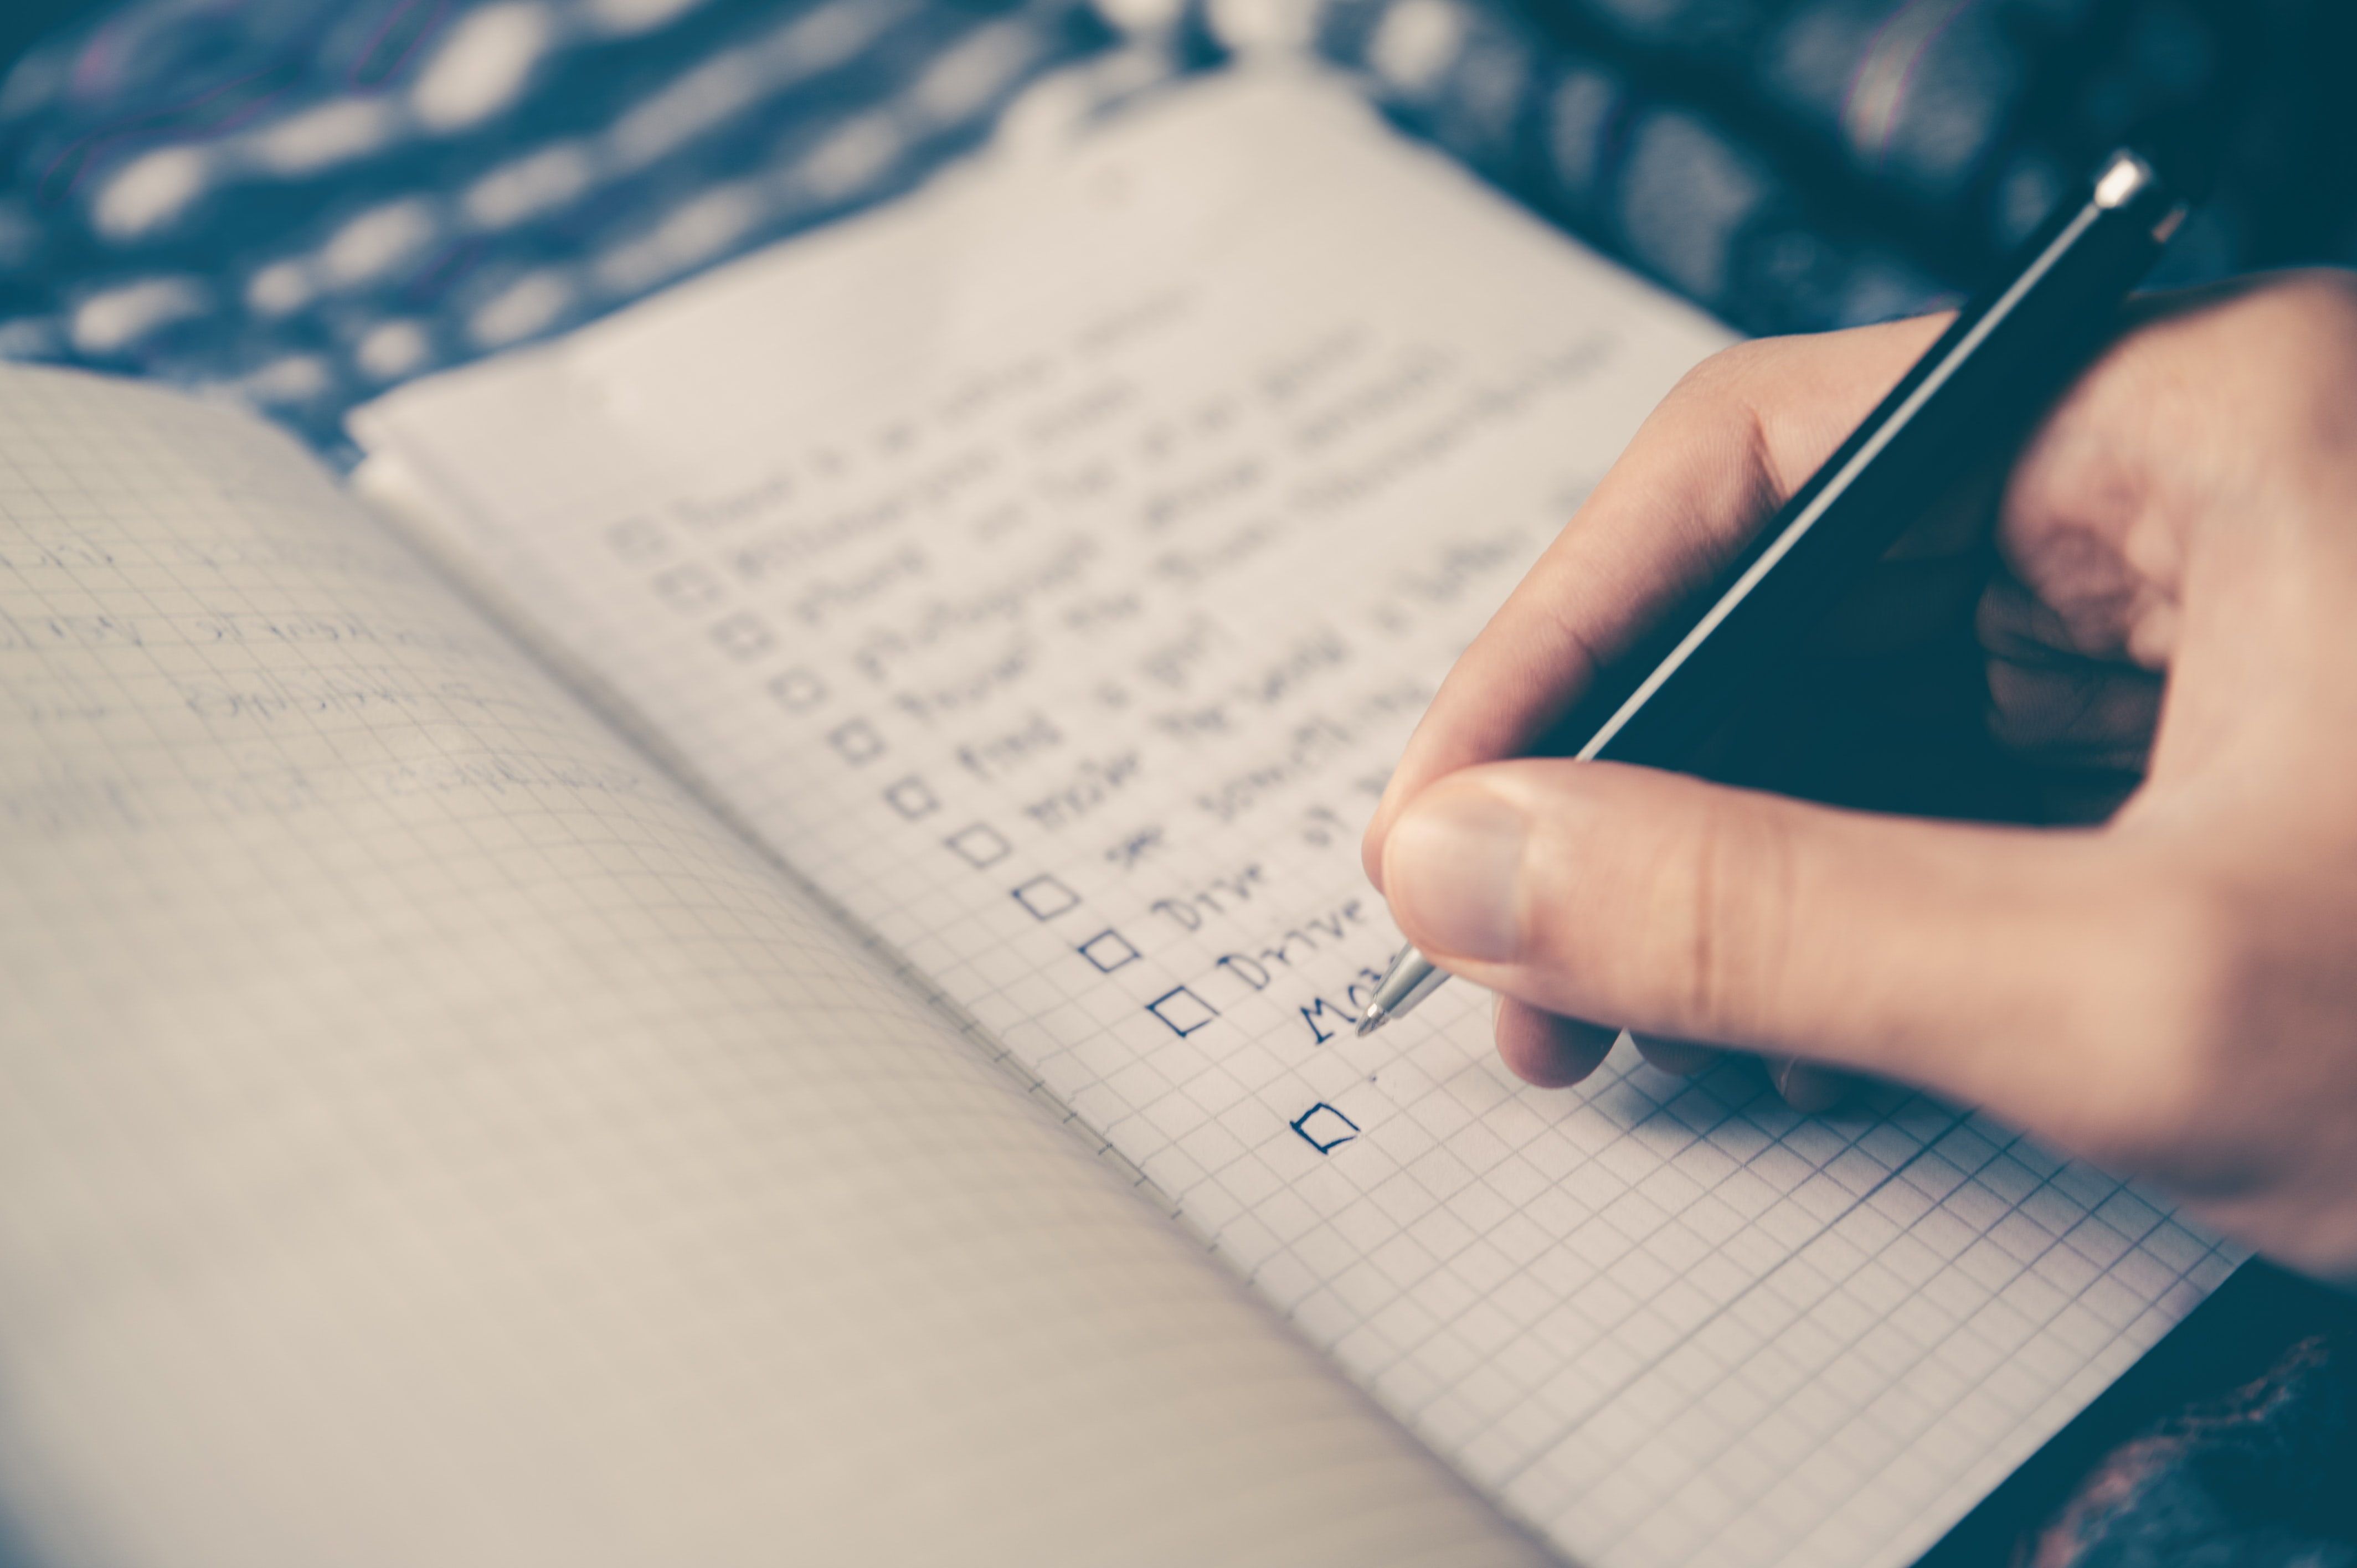 A checklist can help enable you to identify problems, make decisions, and feel organized.